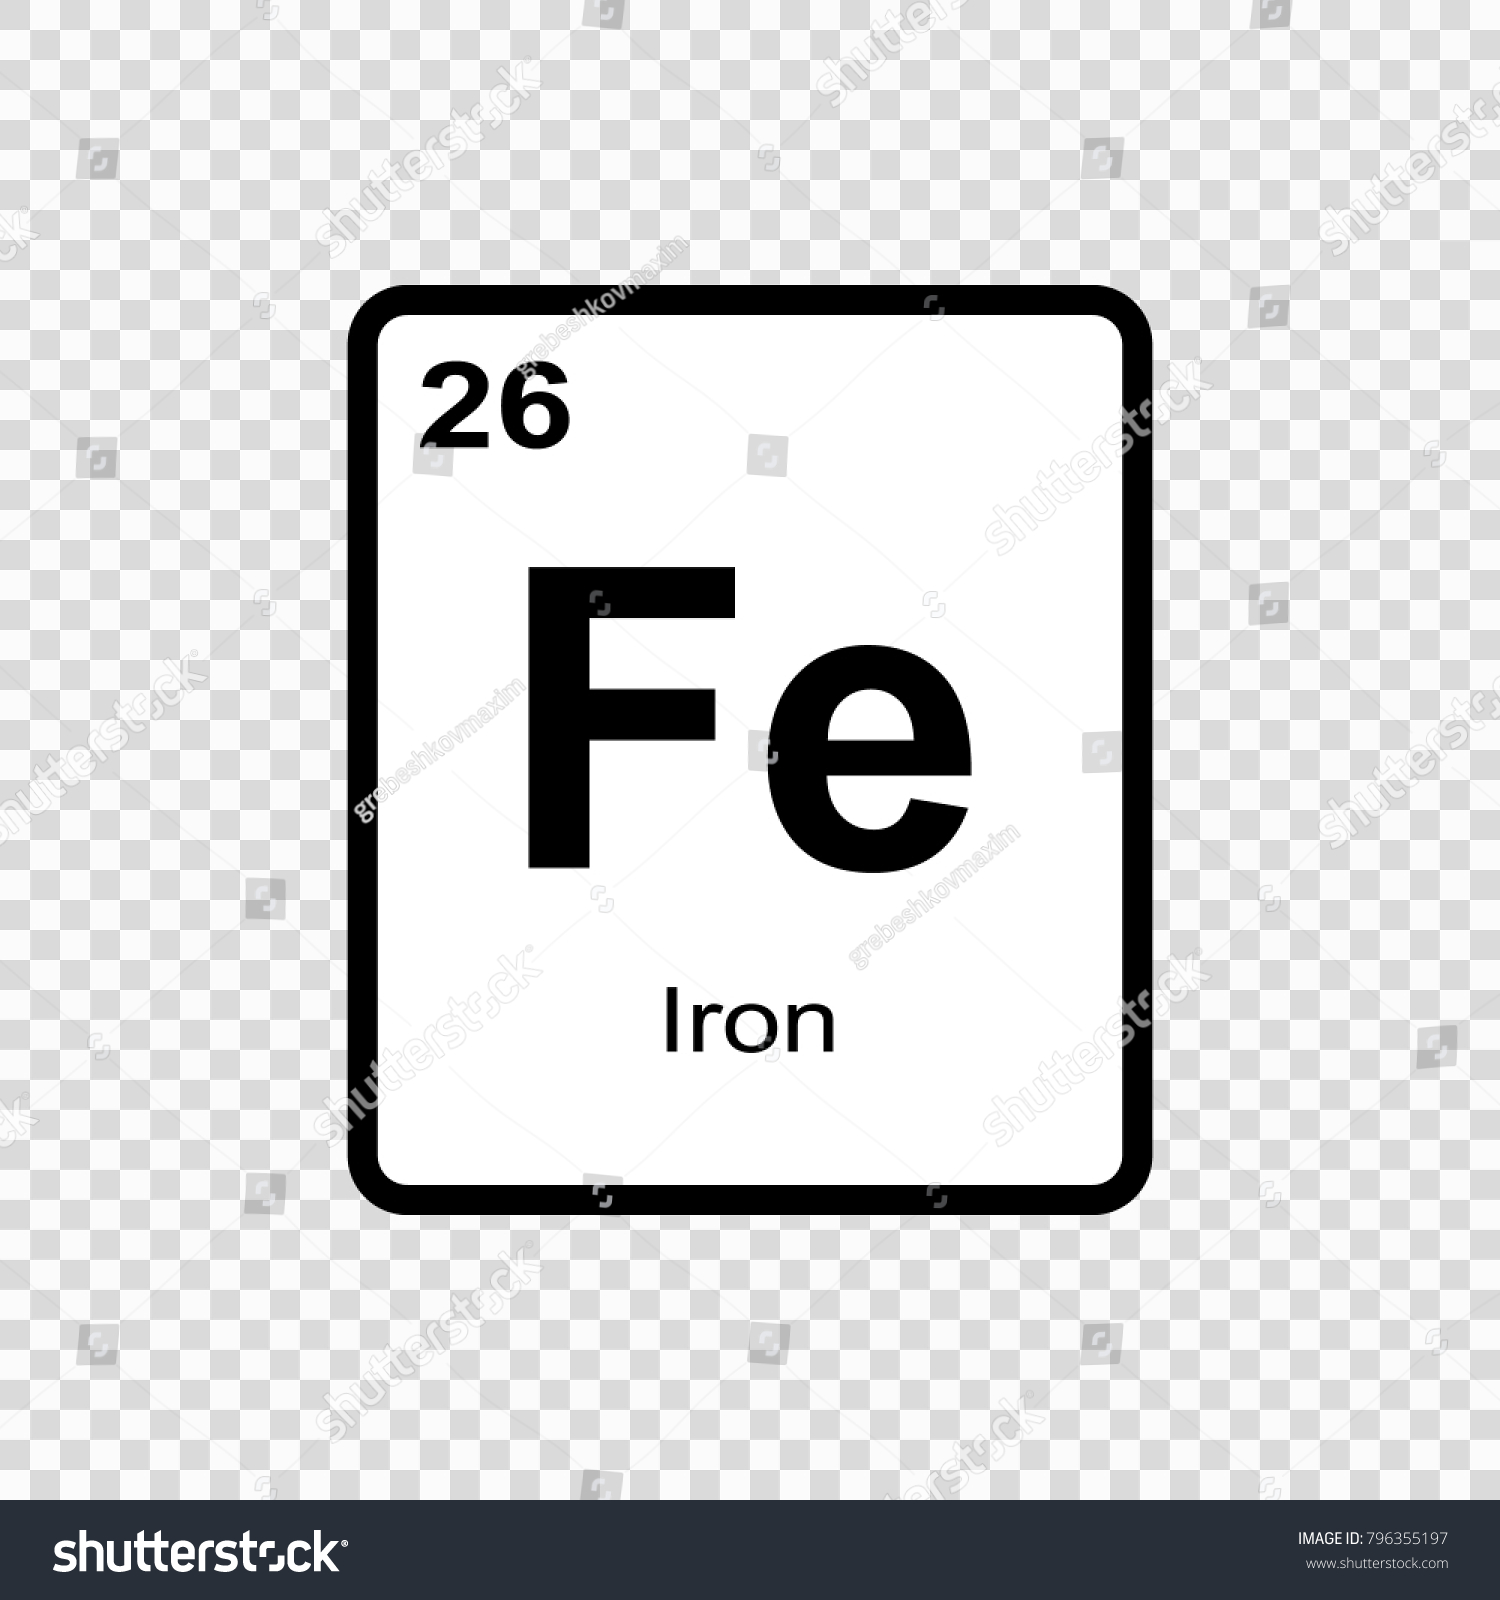 Iron chemical element sign atomic number stock vector 796355197 iron chemical element sign atomic number stock vector 796355197 shutterstock urtaz Images